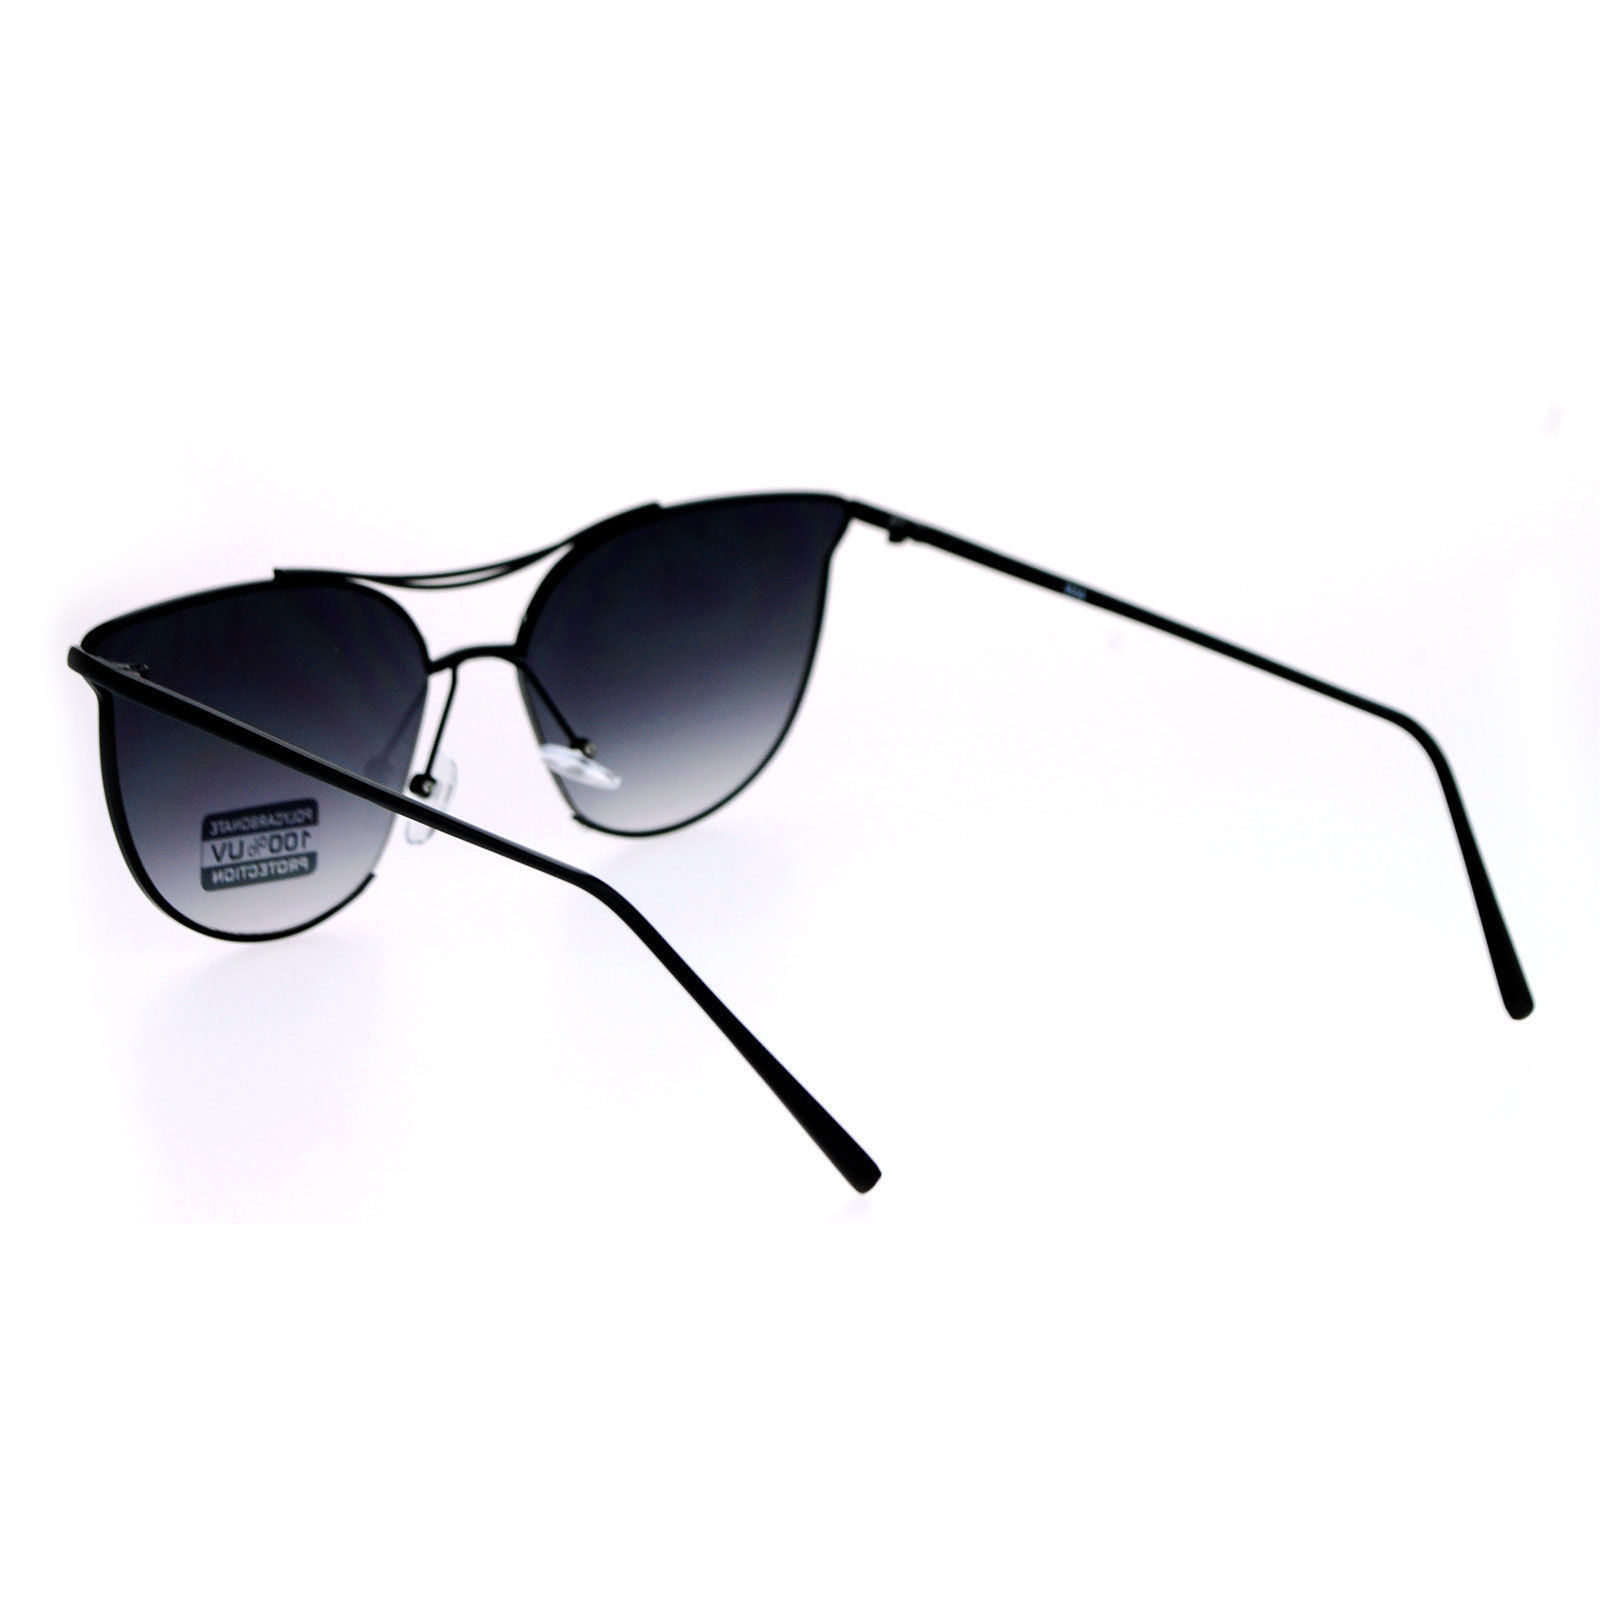 Designer Fashion Sunglasses Womens Metal Open Butterfly Frame UV 400